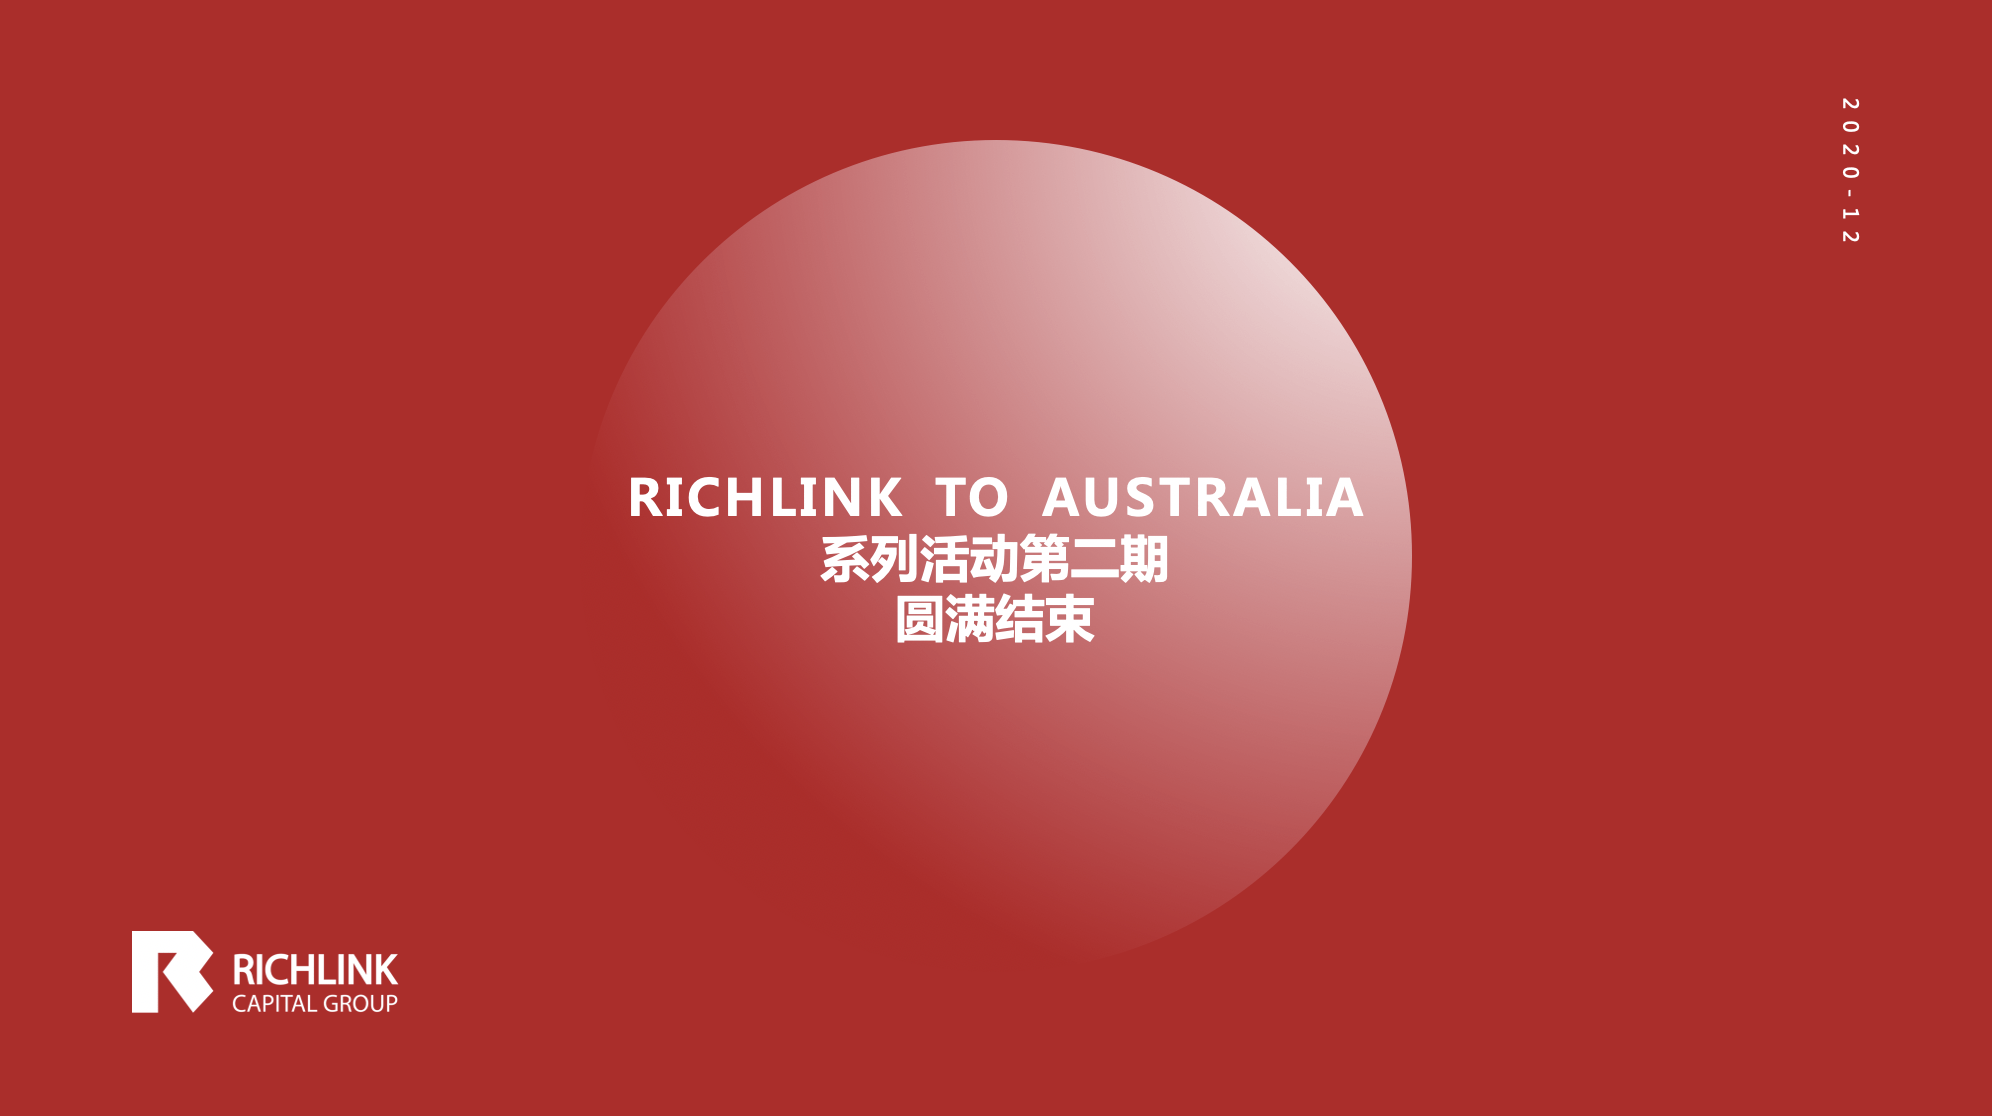 ONLINE EVENT:'Rich Link To Australia – True Value' has been successfuly held